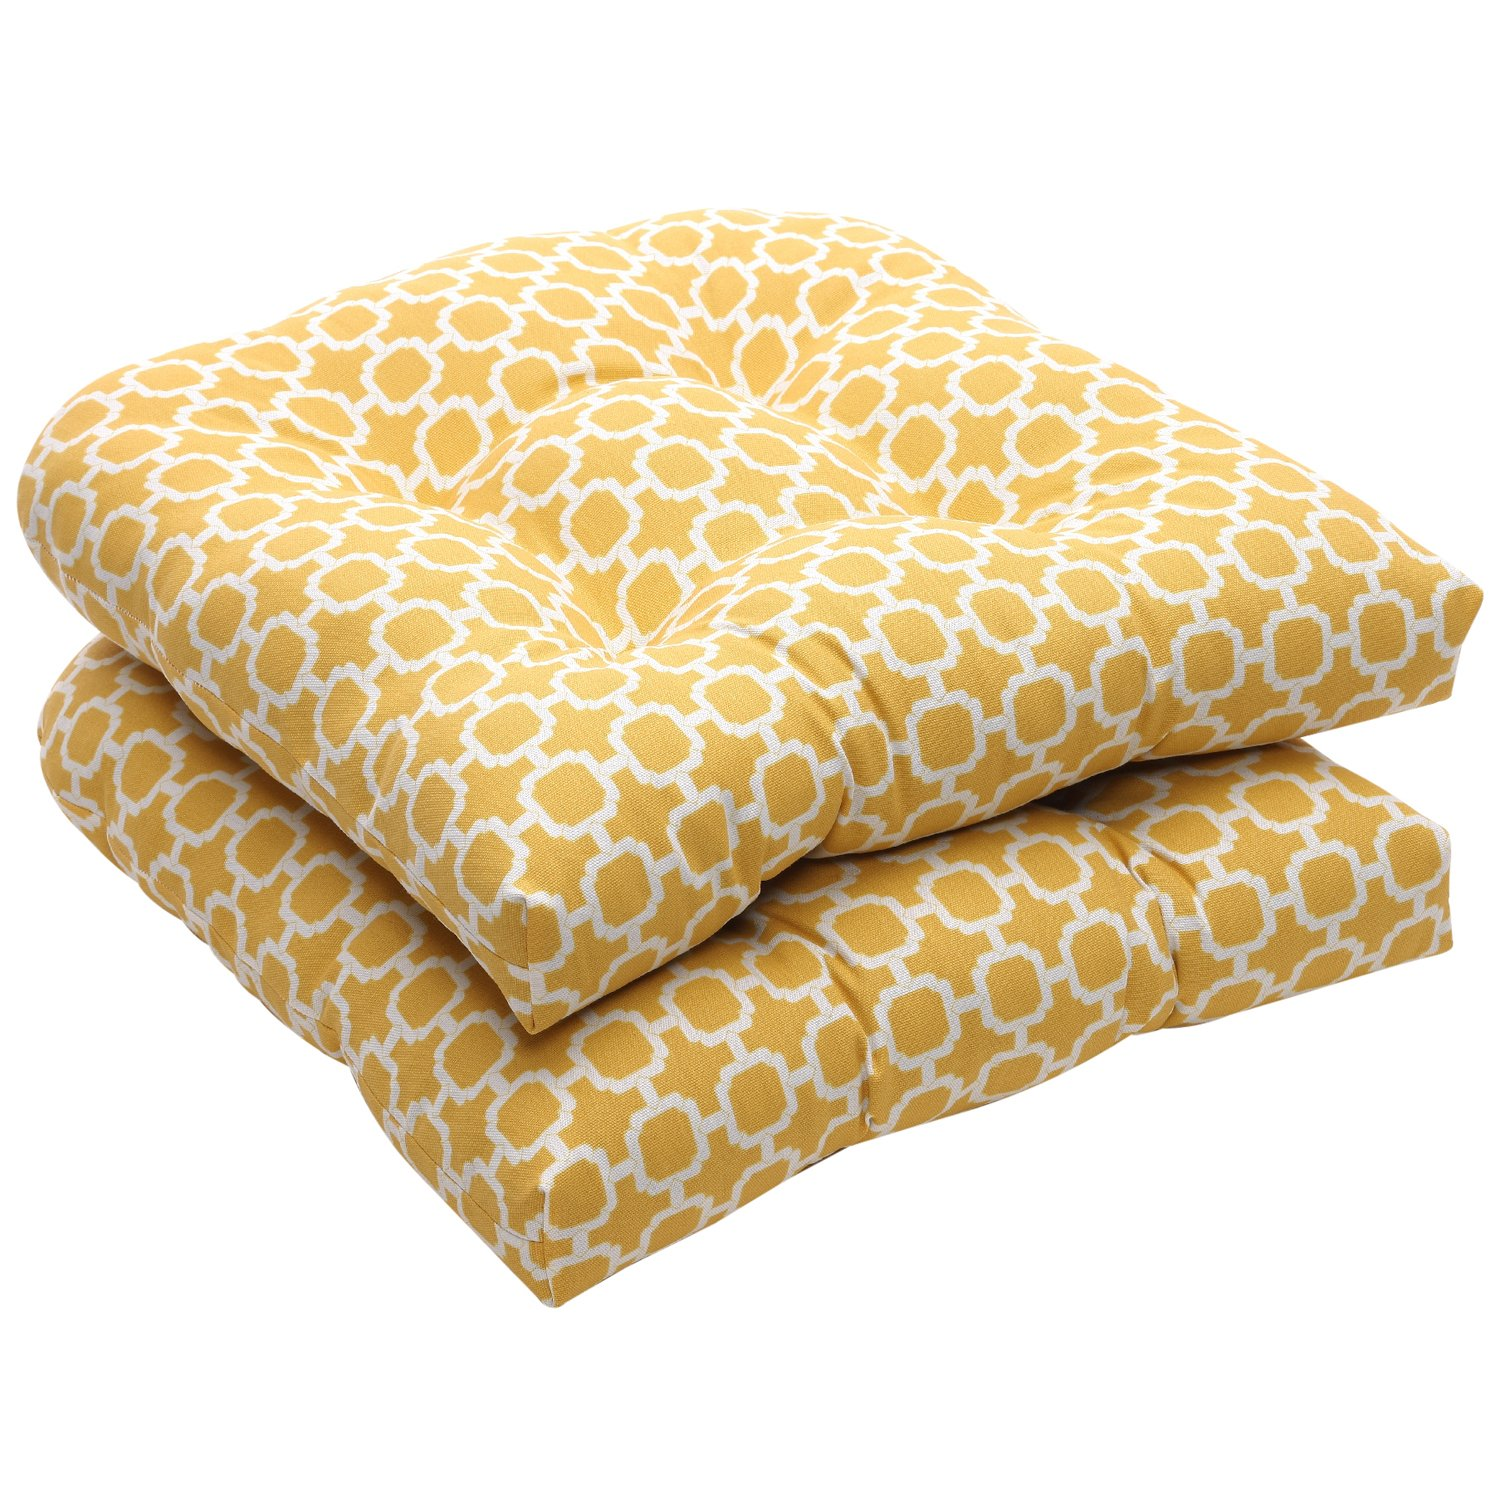 amazoncom pillow perfect yellowwhite geometric wicker seat cushions 2pack home u0026 kitchen